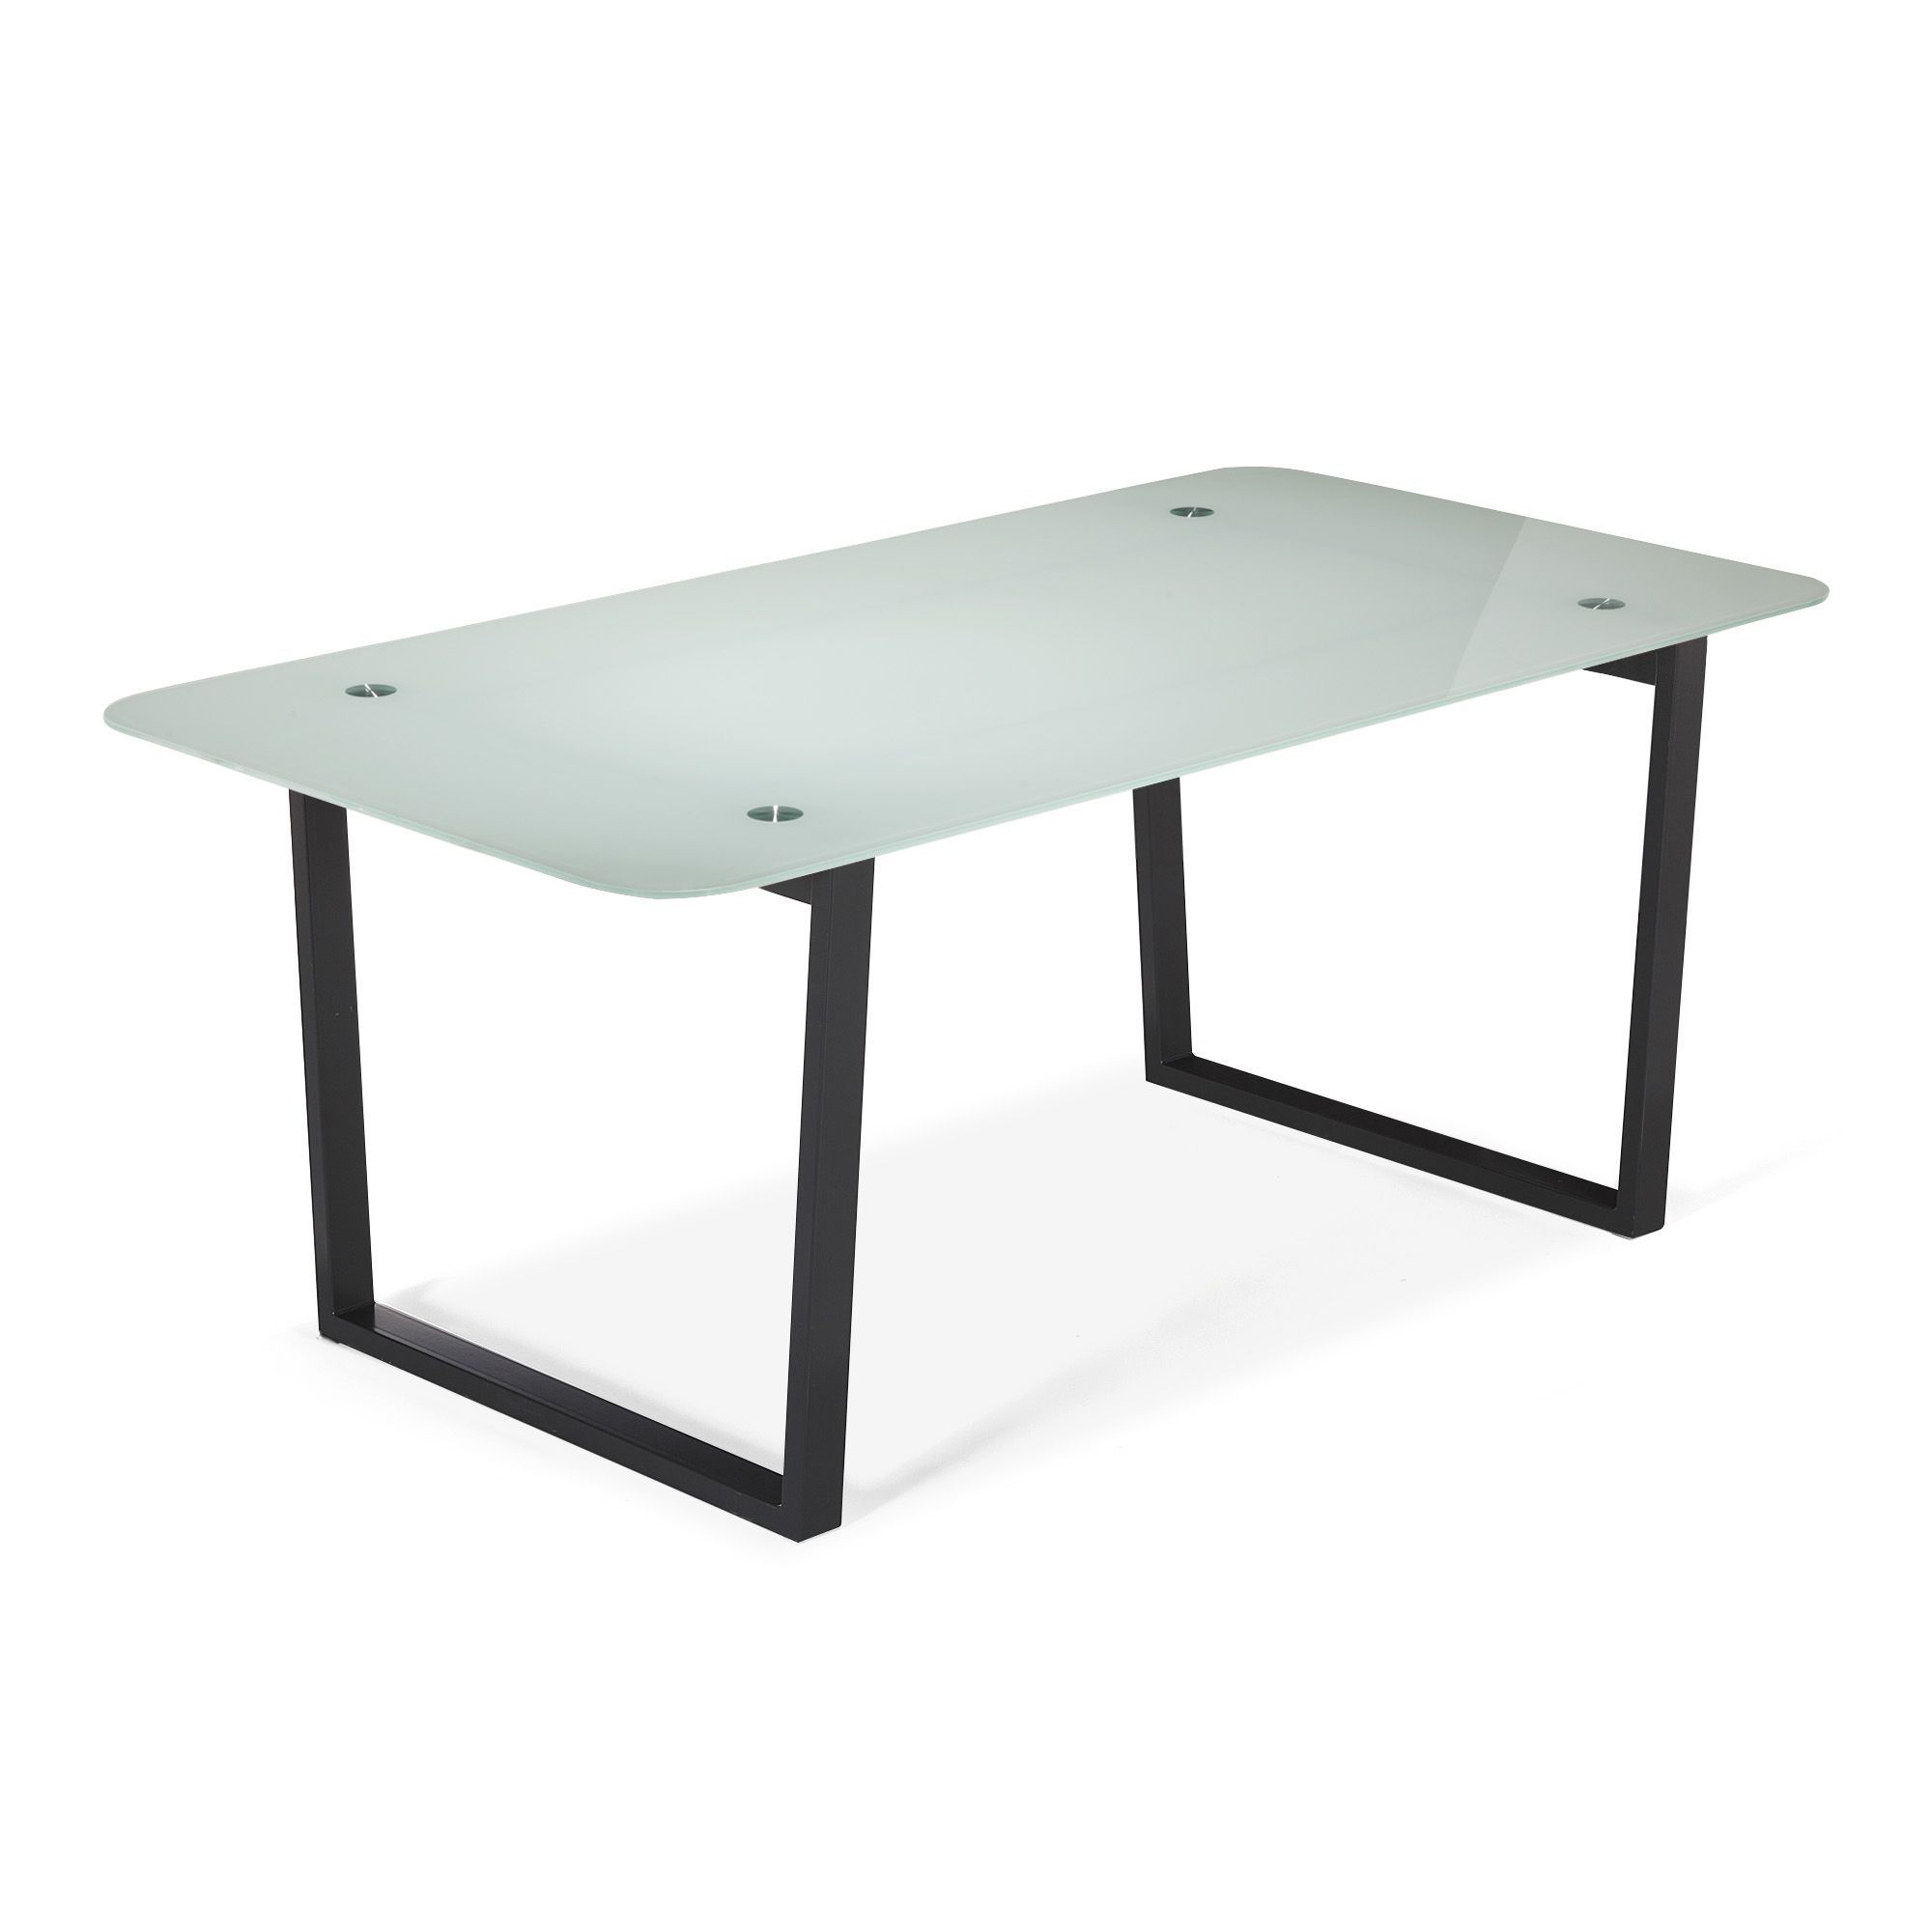 64ac79b9e00b59eba3132ecc7c7efad0 Meilleur De De Chaise Table A Manger